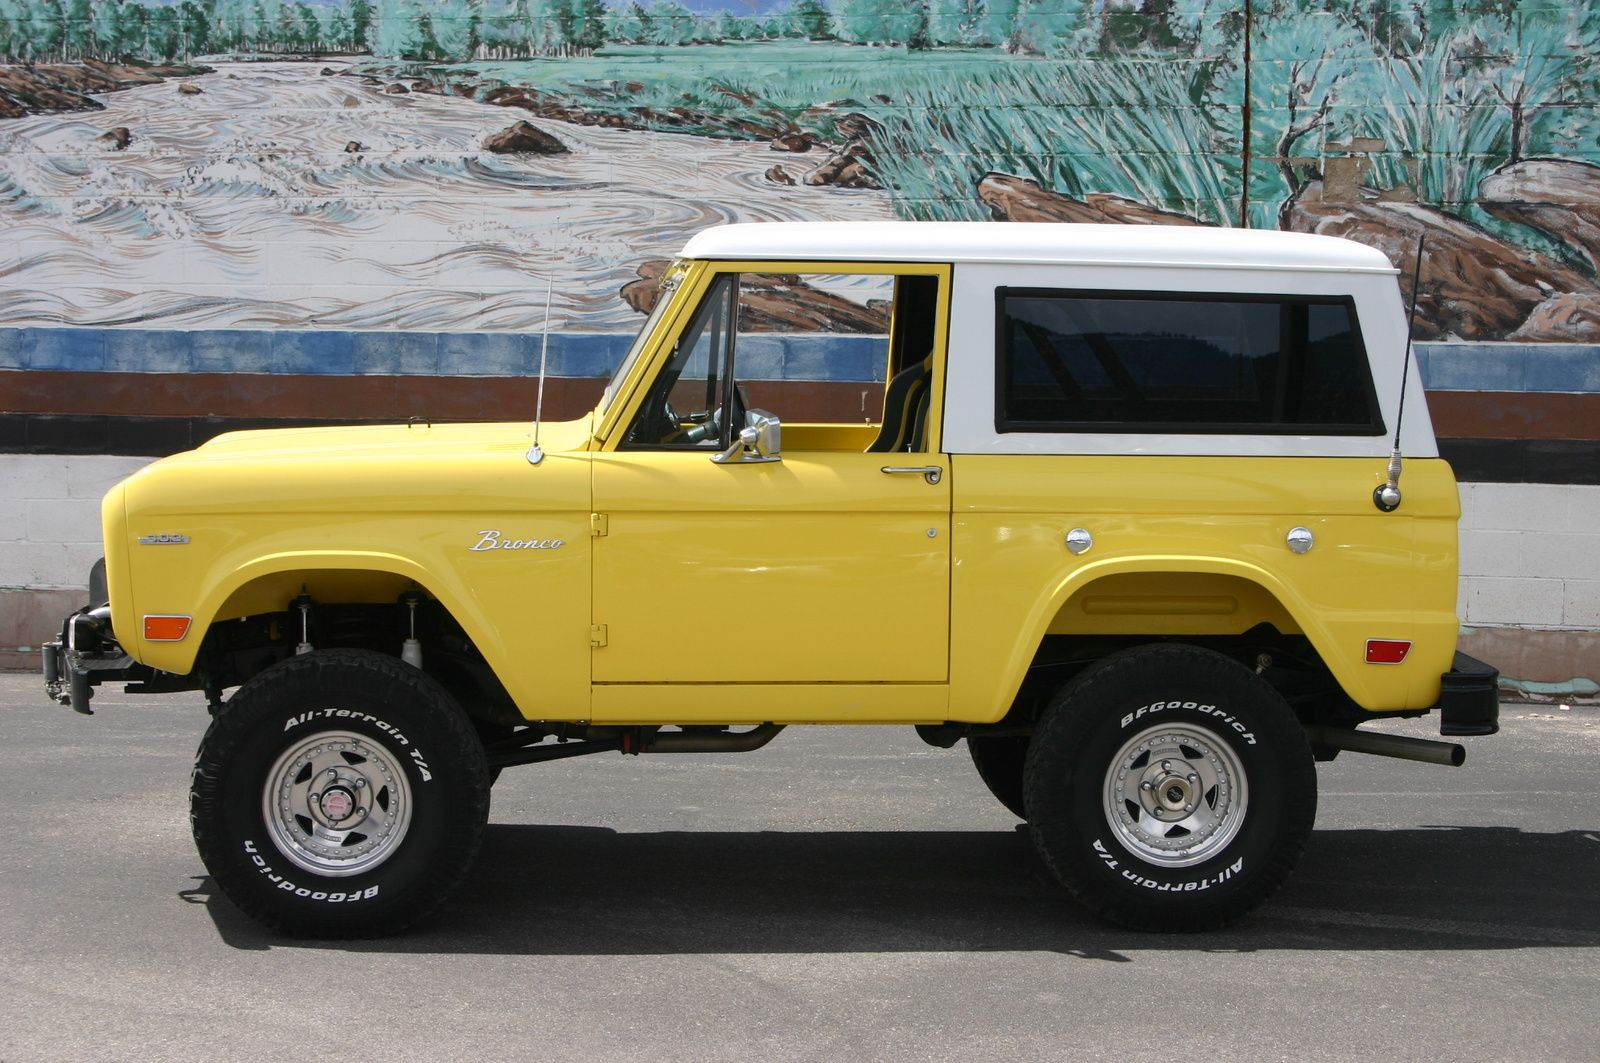 bb927f9920b7a0eb6c500d0651e9b78a ford bronco picture of 1968 ford bronco, exterior other stump 1979 ford bronco fuse box diagram at nearapp.co